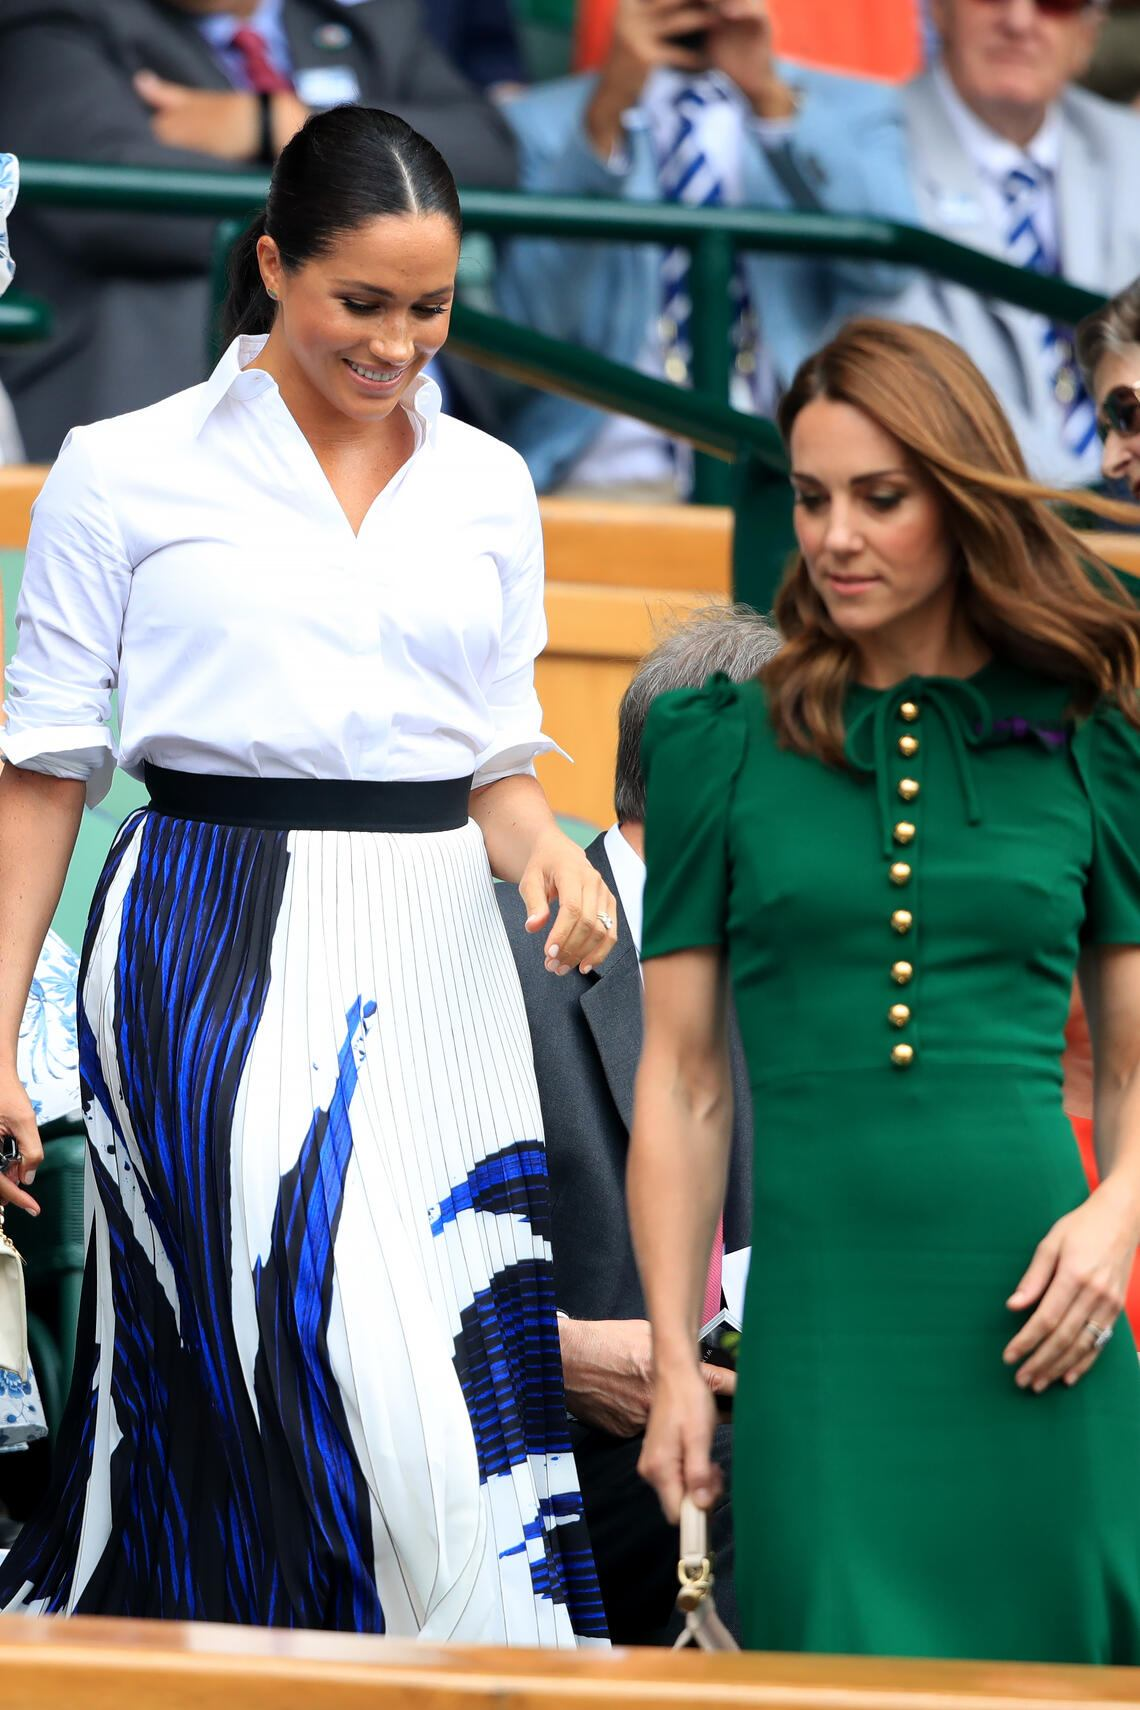 The Duchess of Cambridge and The Duchess of Sussex on day twelve of the Wimbledon Championships at the All England Lawn Tennis and Croquet Club, Wimbledon. (Photo by Adam Davy/PA Images via Getty Images)